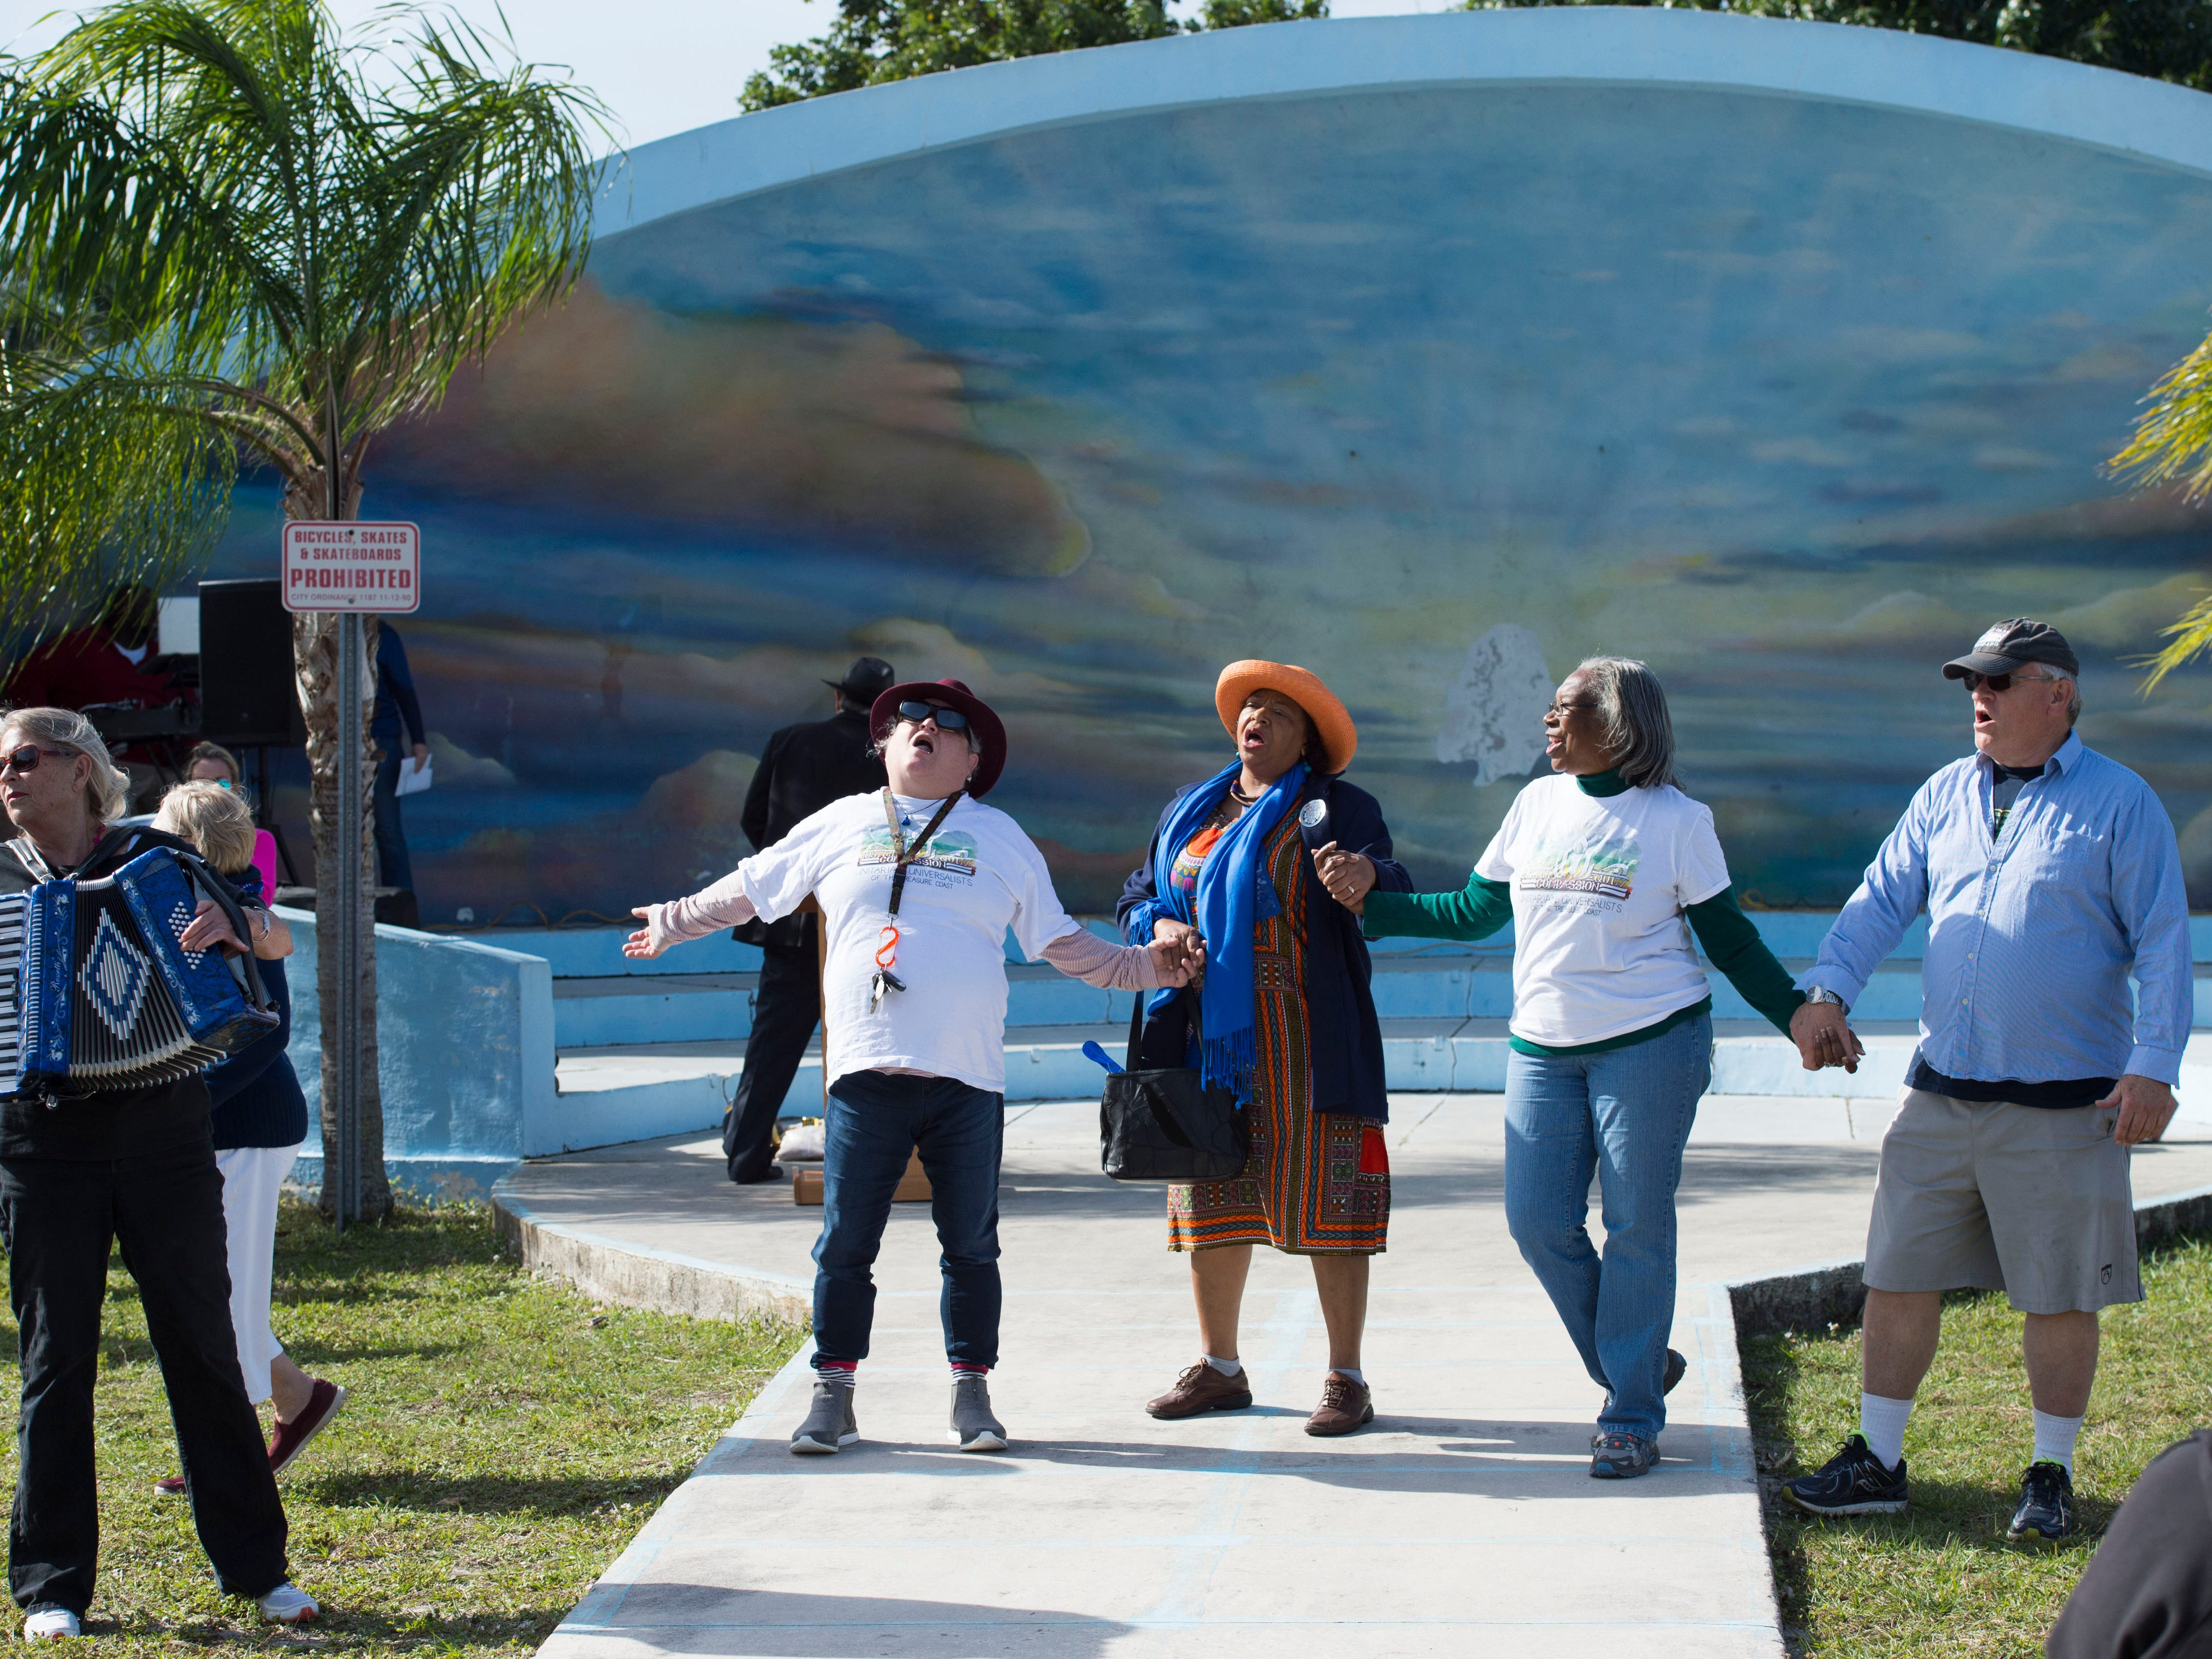 """Led by the Treasure Coast Unitarian Universalist Congregation music director Jackie May (from left), Carolyn Haykin, of Jensen Beach, Stuart commissioner Eula Clarke, Barney Miller Moore, of Port St. Lucie and Fred Fiske, seasonal resident of Stuart, join hands and sing """"We Shall Overcome"""" on Jan. 15, 2018 at East Stuart Partnership's Martin Luther King Jr. celebration at Memorial Park in Stuart. """"This is my 40th Martin Luther King Jr. parade playing accordion,"""" May said. """"I really believe in bringing the music."""" The celebration began with a parade through East Stuart and concluded with the festival that included speakers, performances, food and more."""